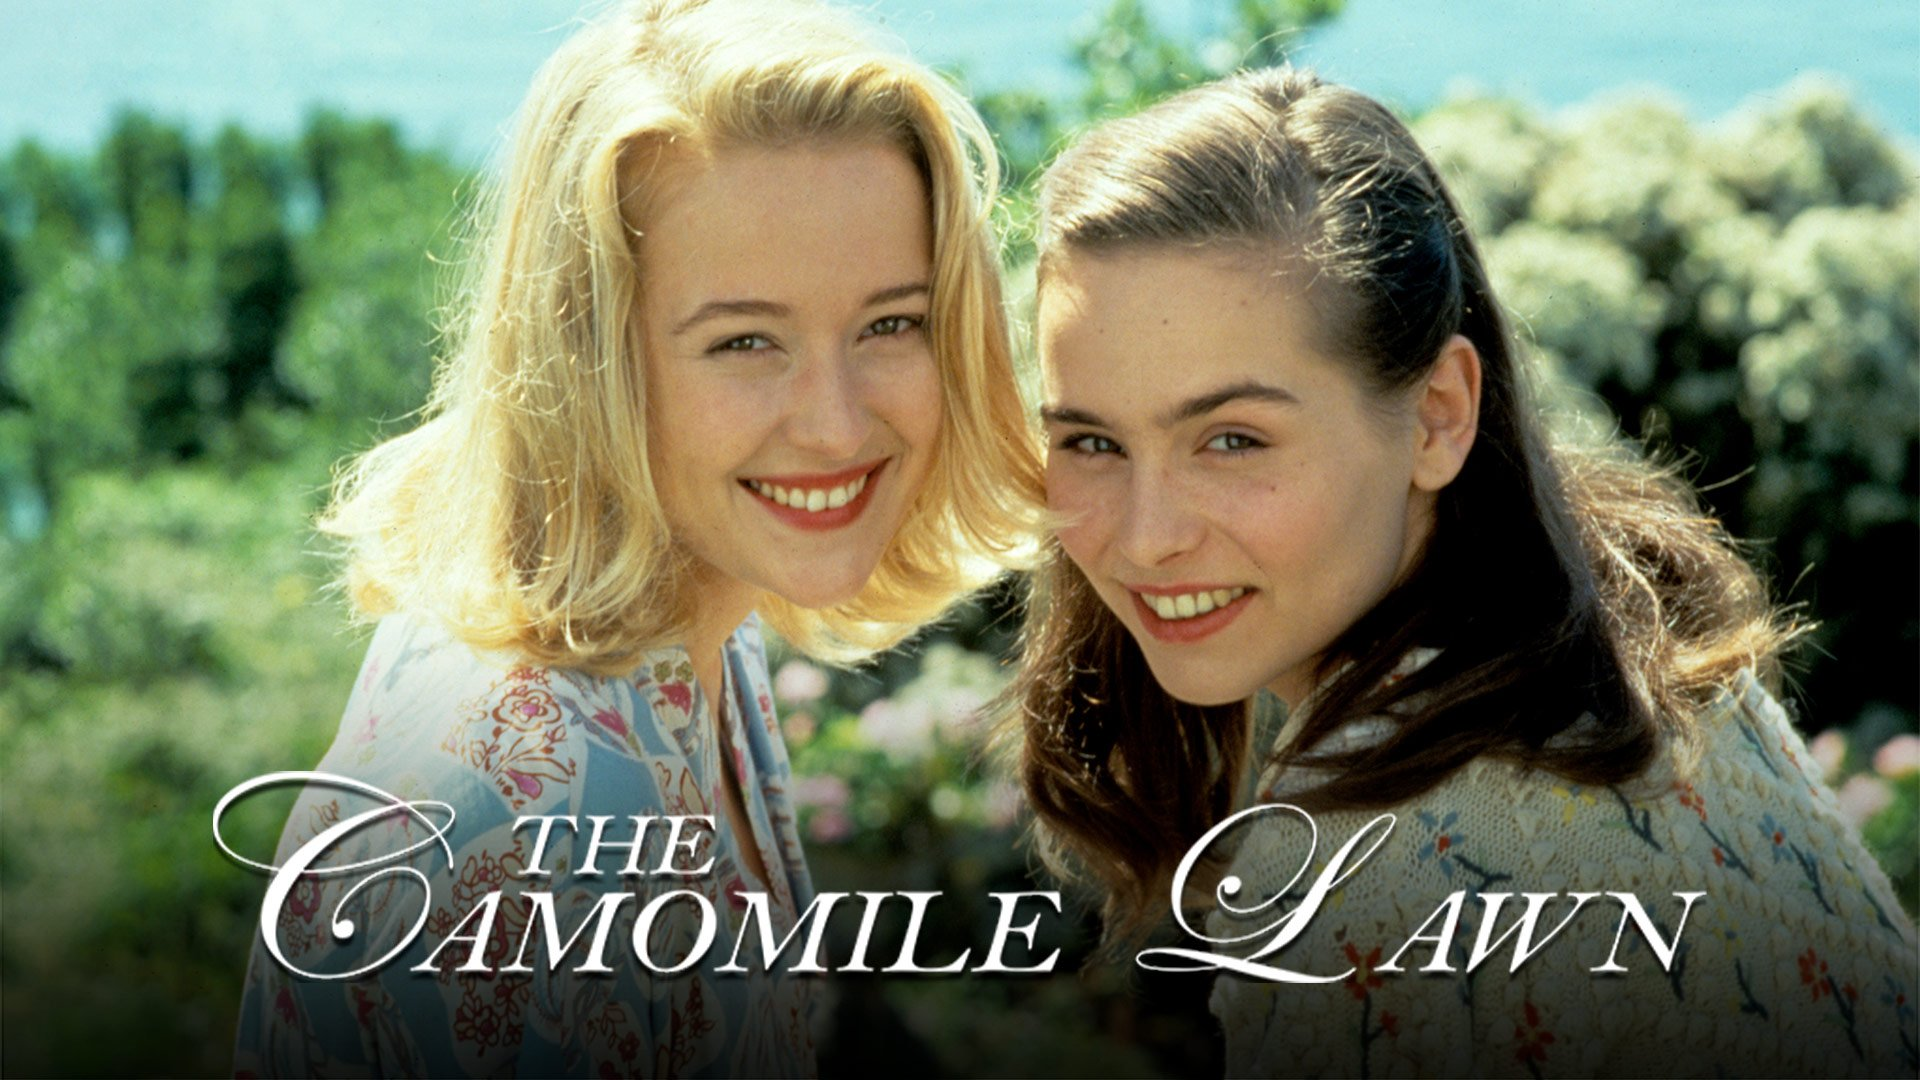 The Camomile Lawn on BritBox UK